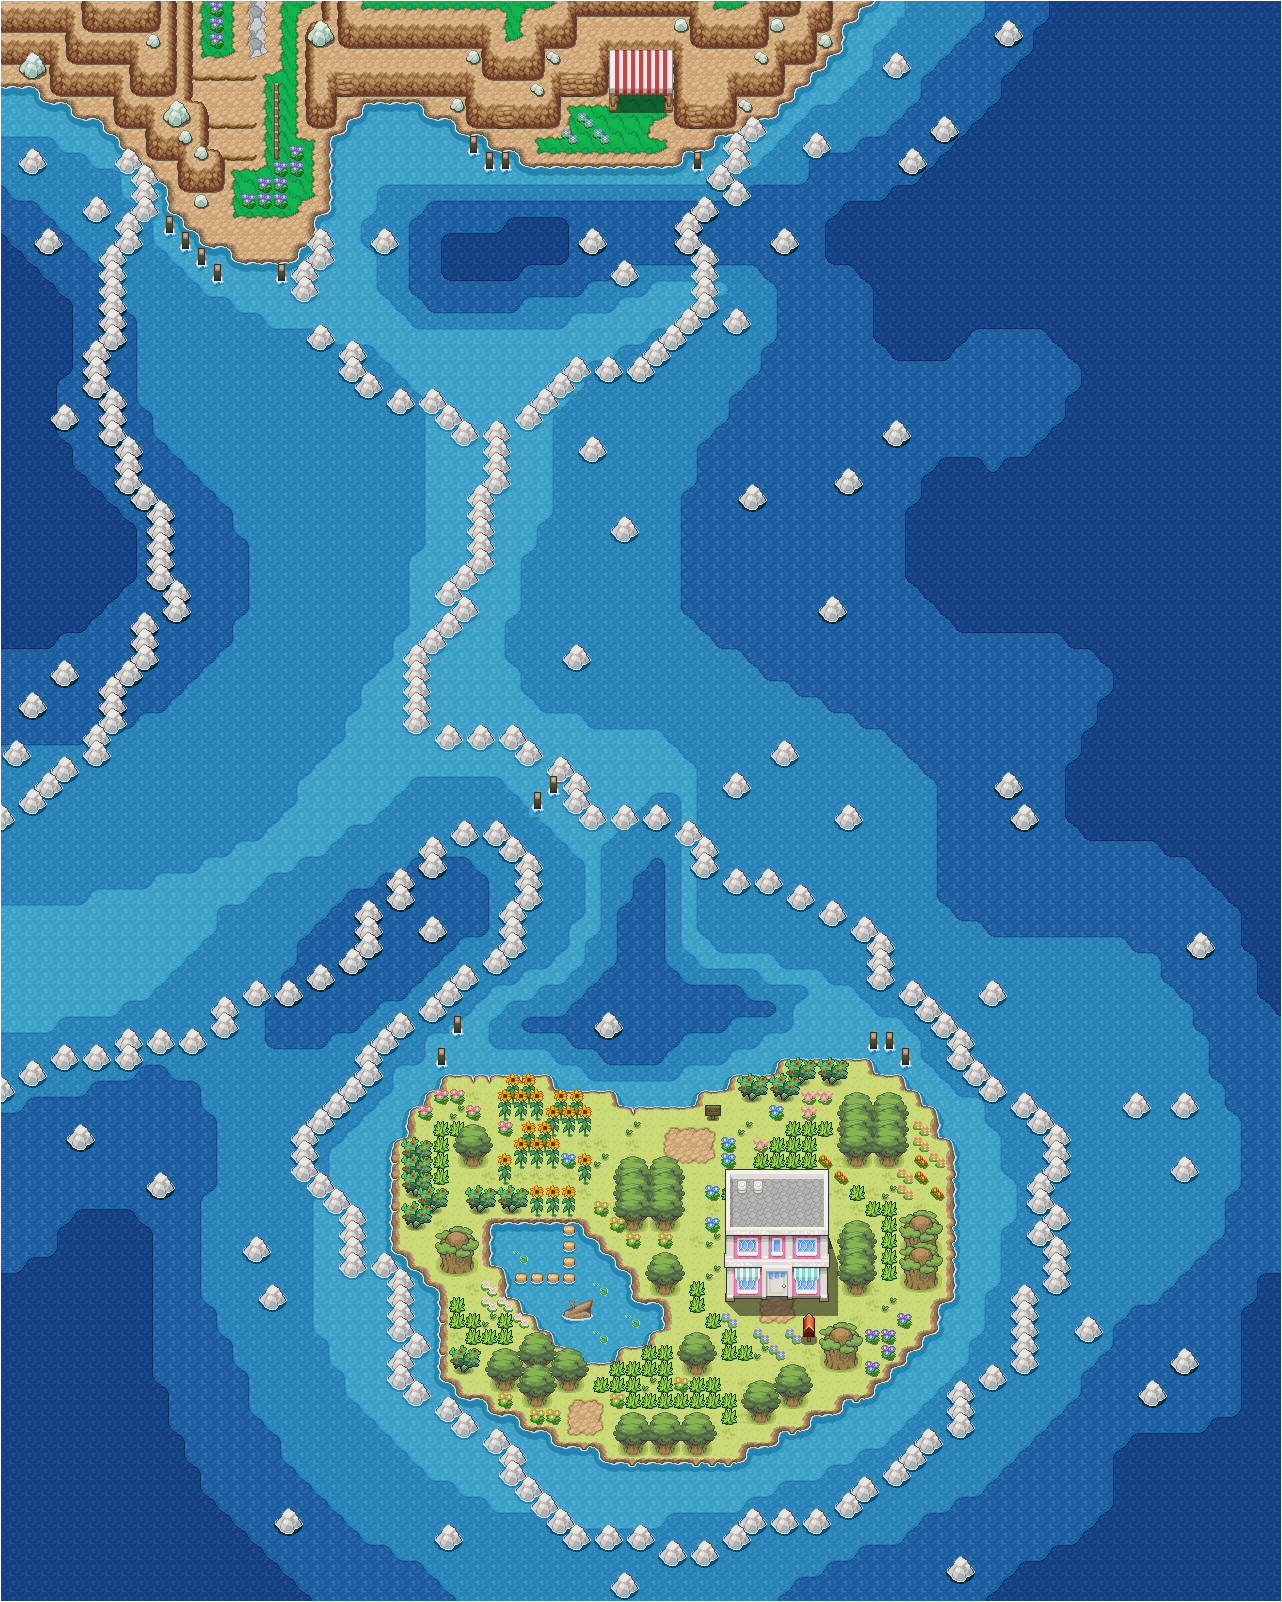 Pokemon Route 20 Map – Daily Motivational Quotes